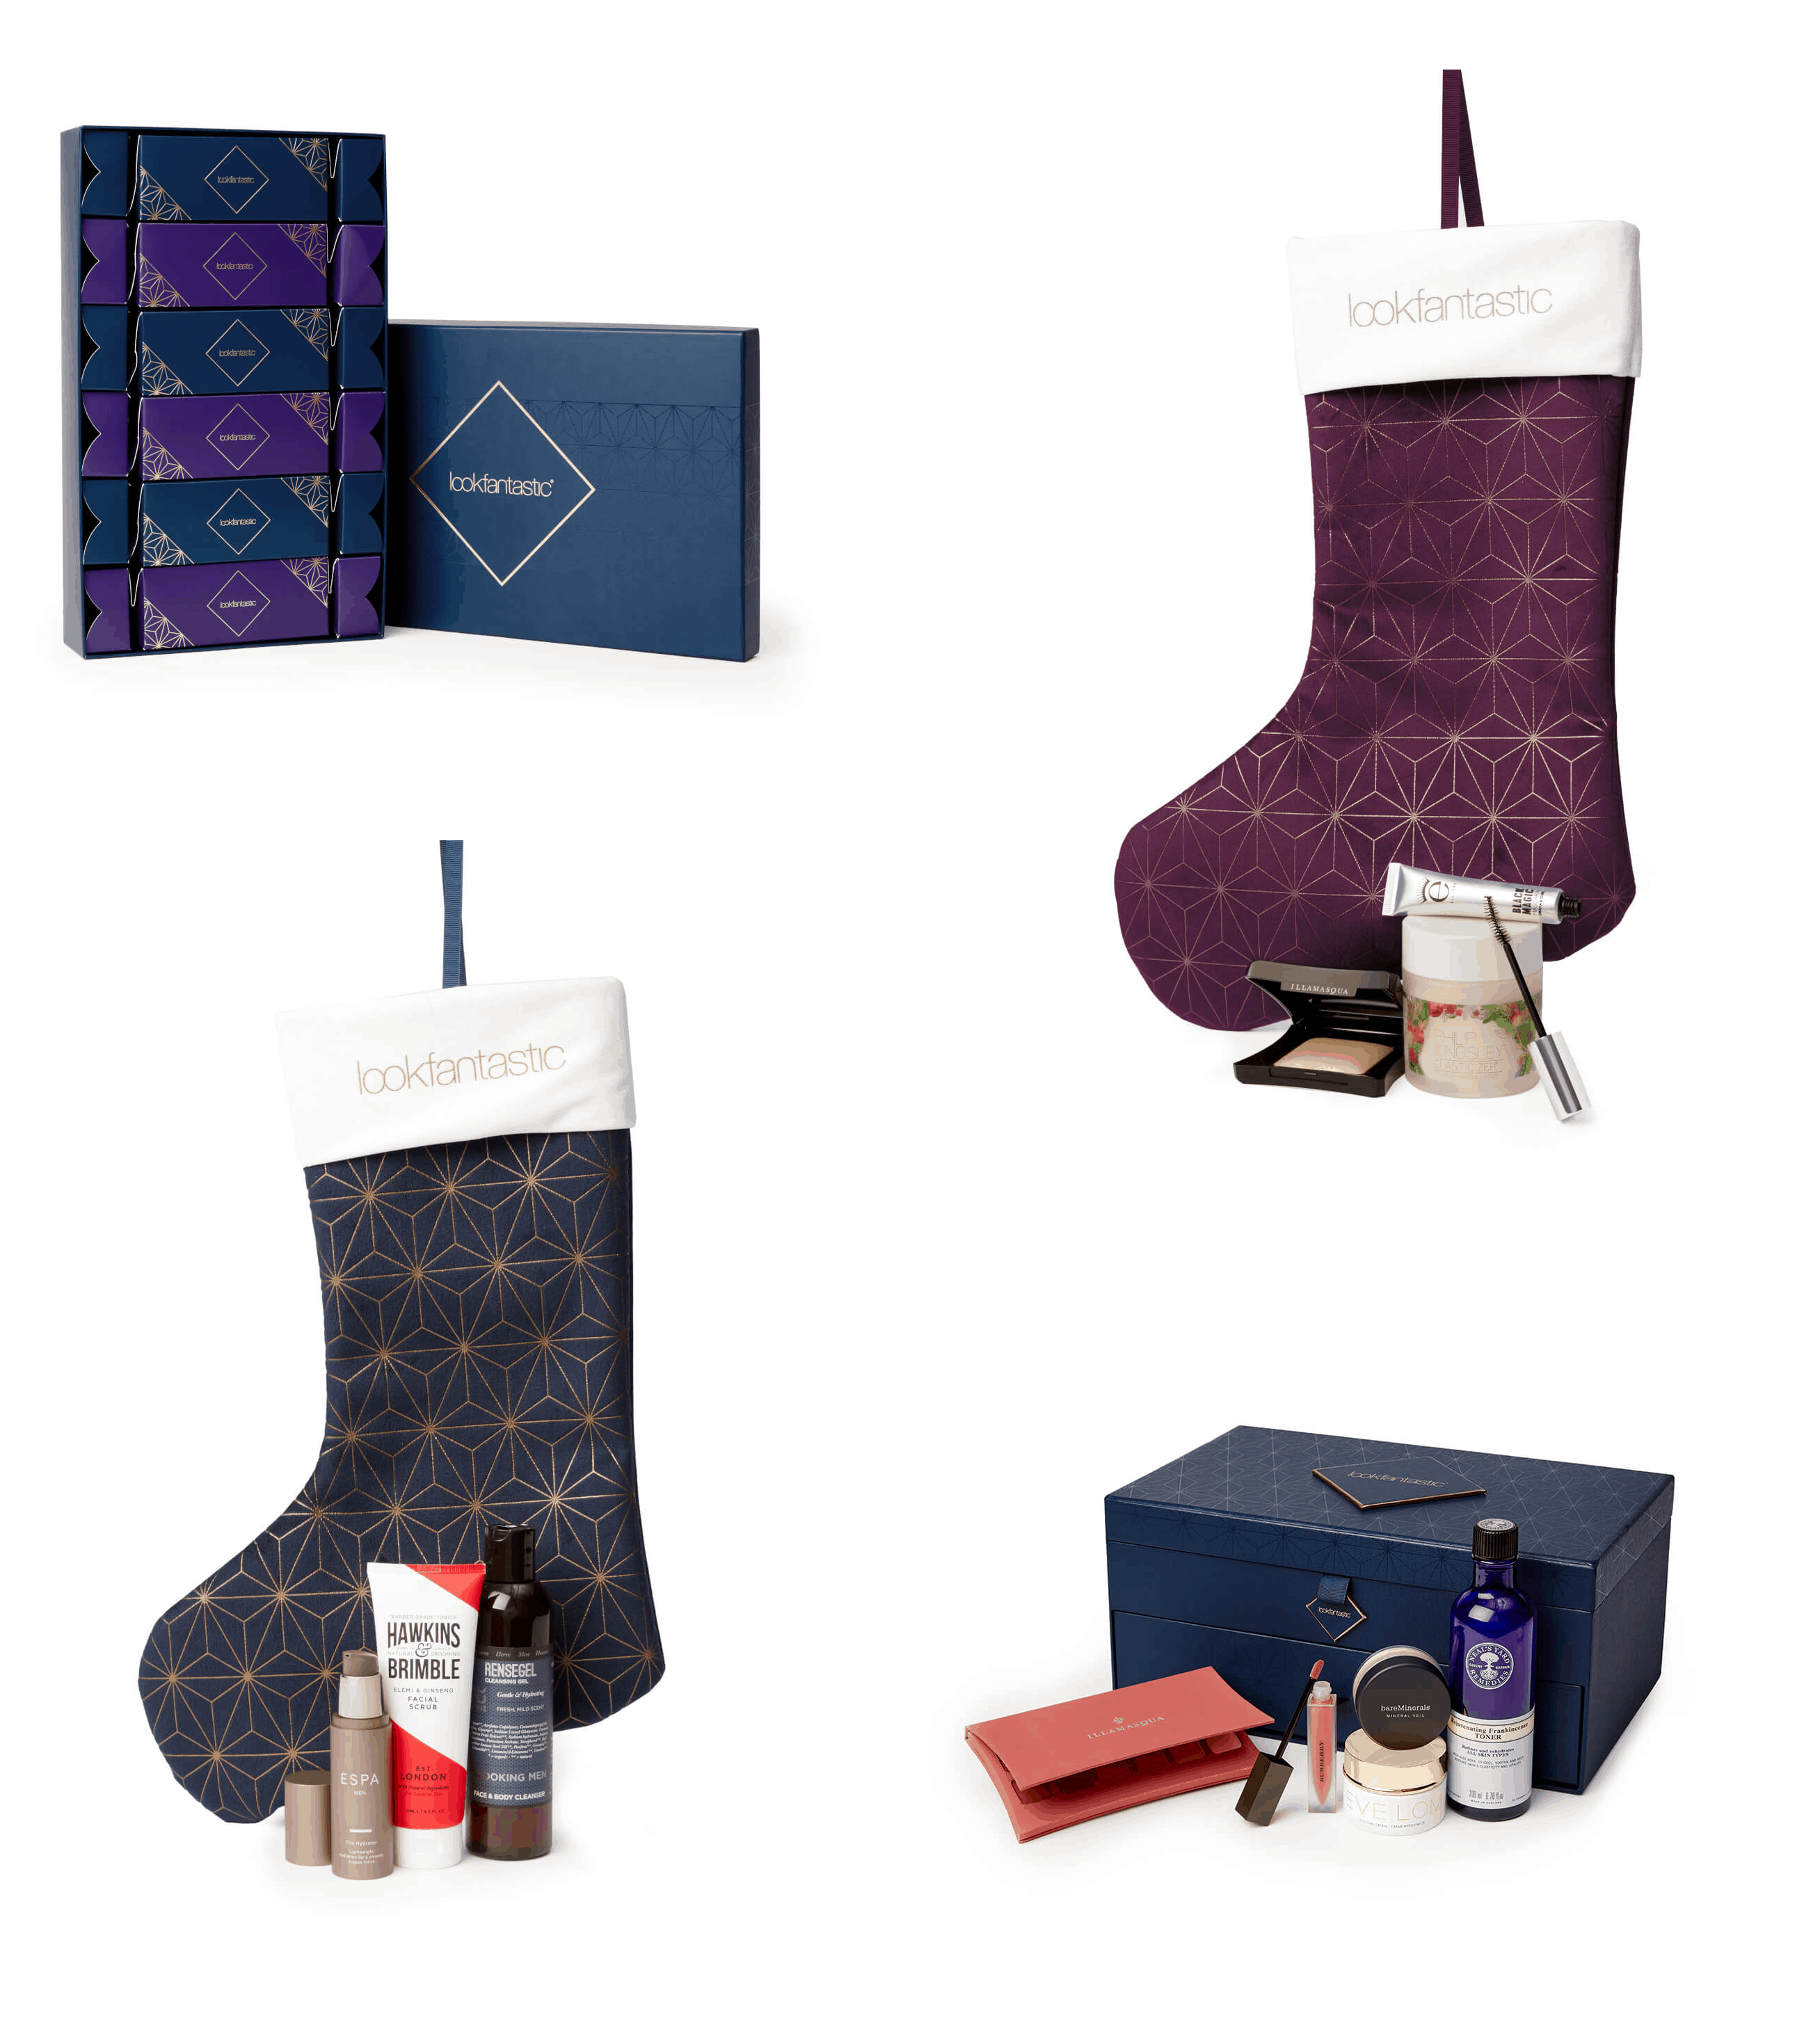 Look Fantastic Holiday Gifts Available Now: Beauty Chest, Christmas Crackers, and Christmas Stockings!